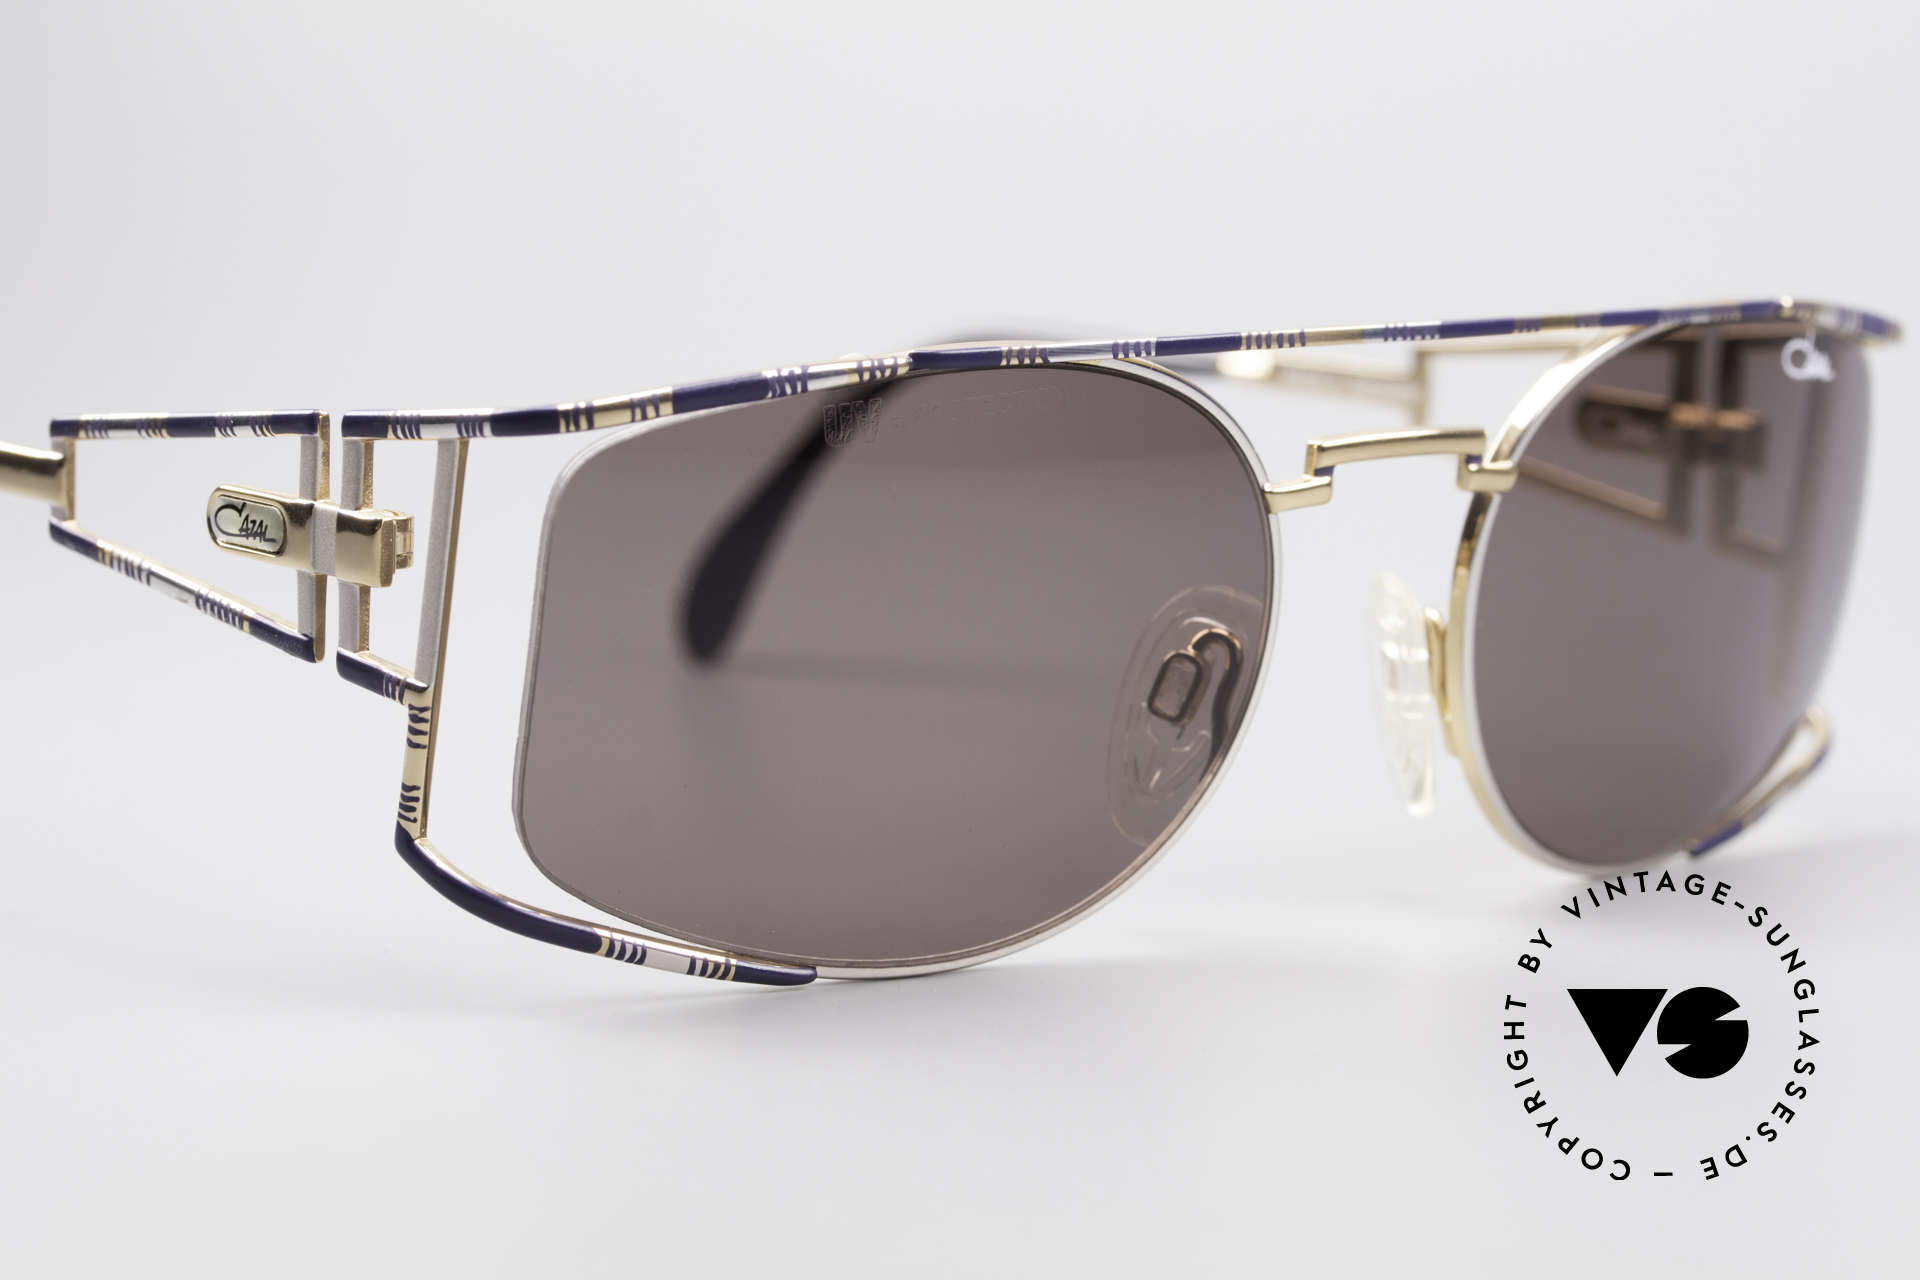 Cazal 967 Vintage Designer Sunglasses, unworn (like all our rare vintage Cazal sunglasses), Made for Men and Women